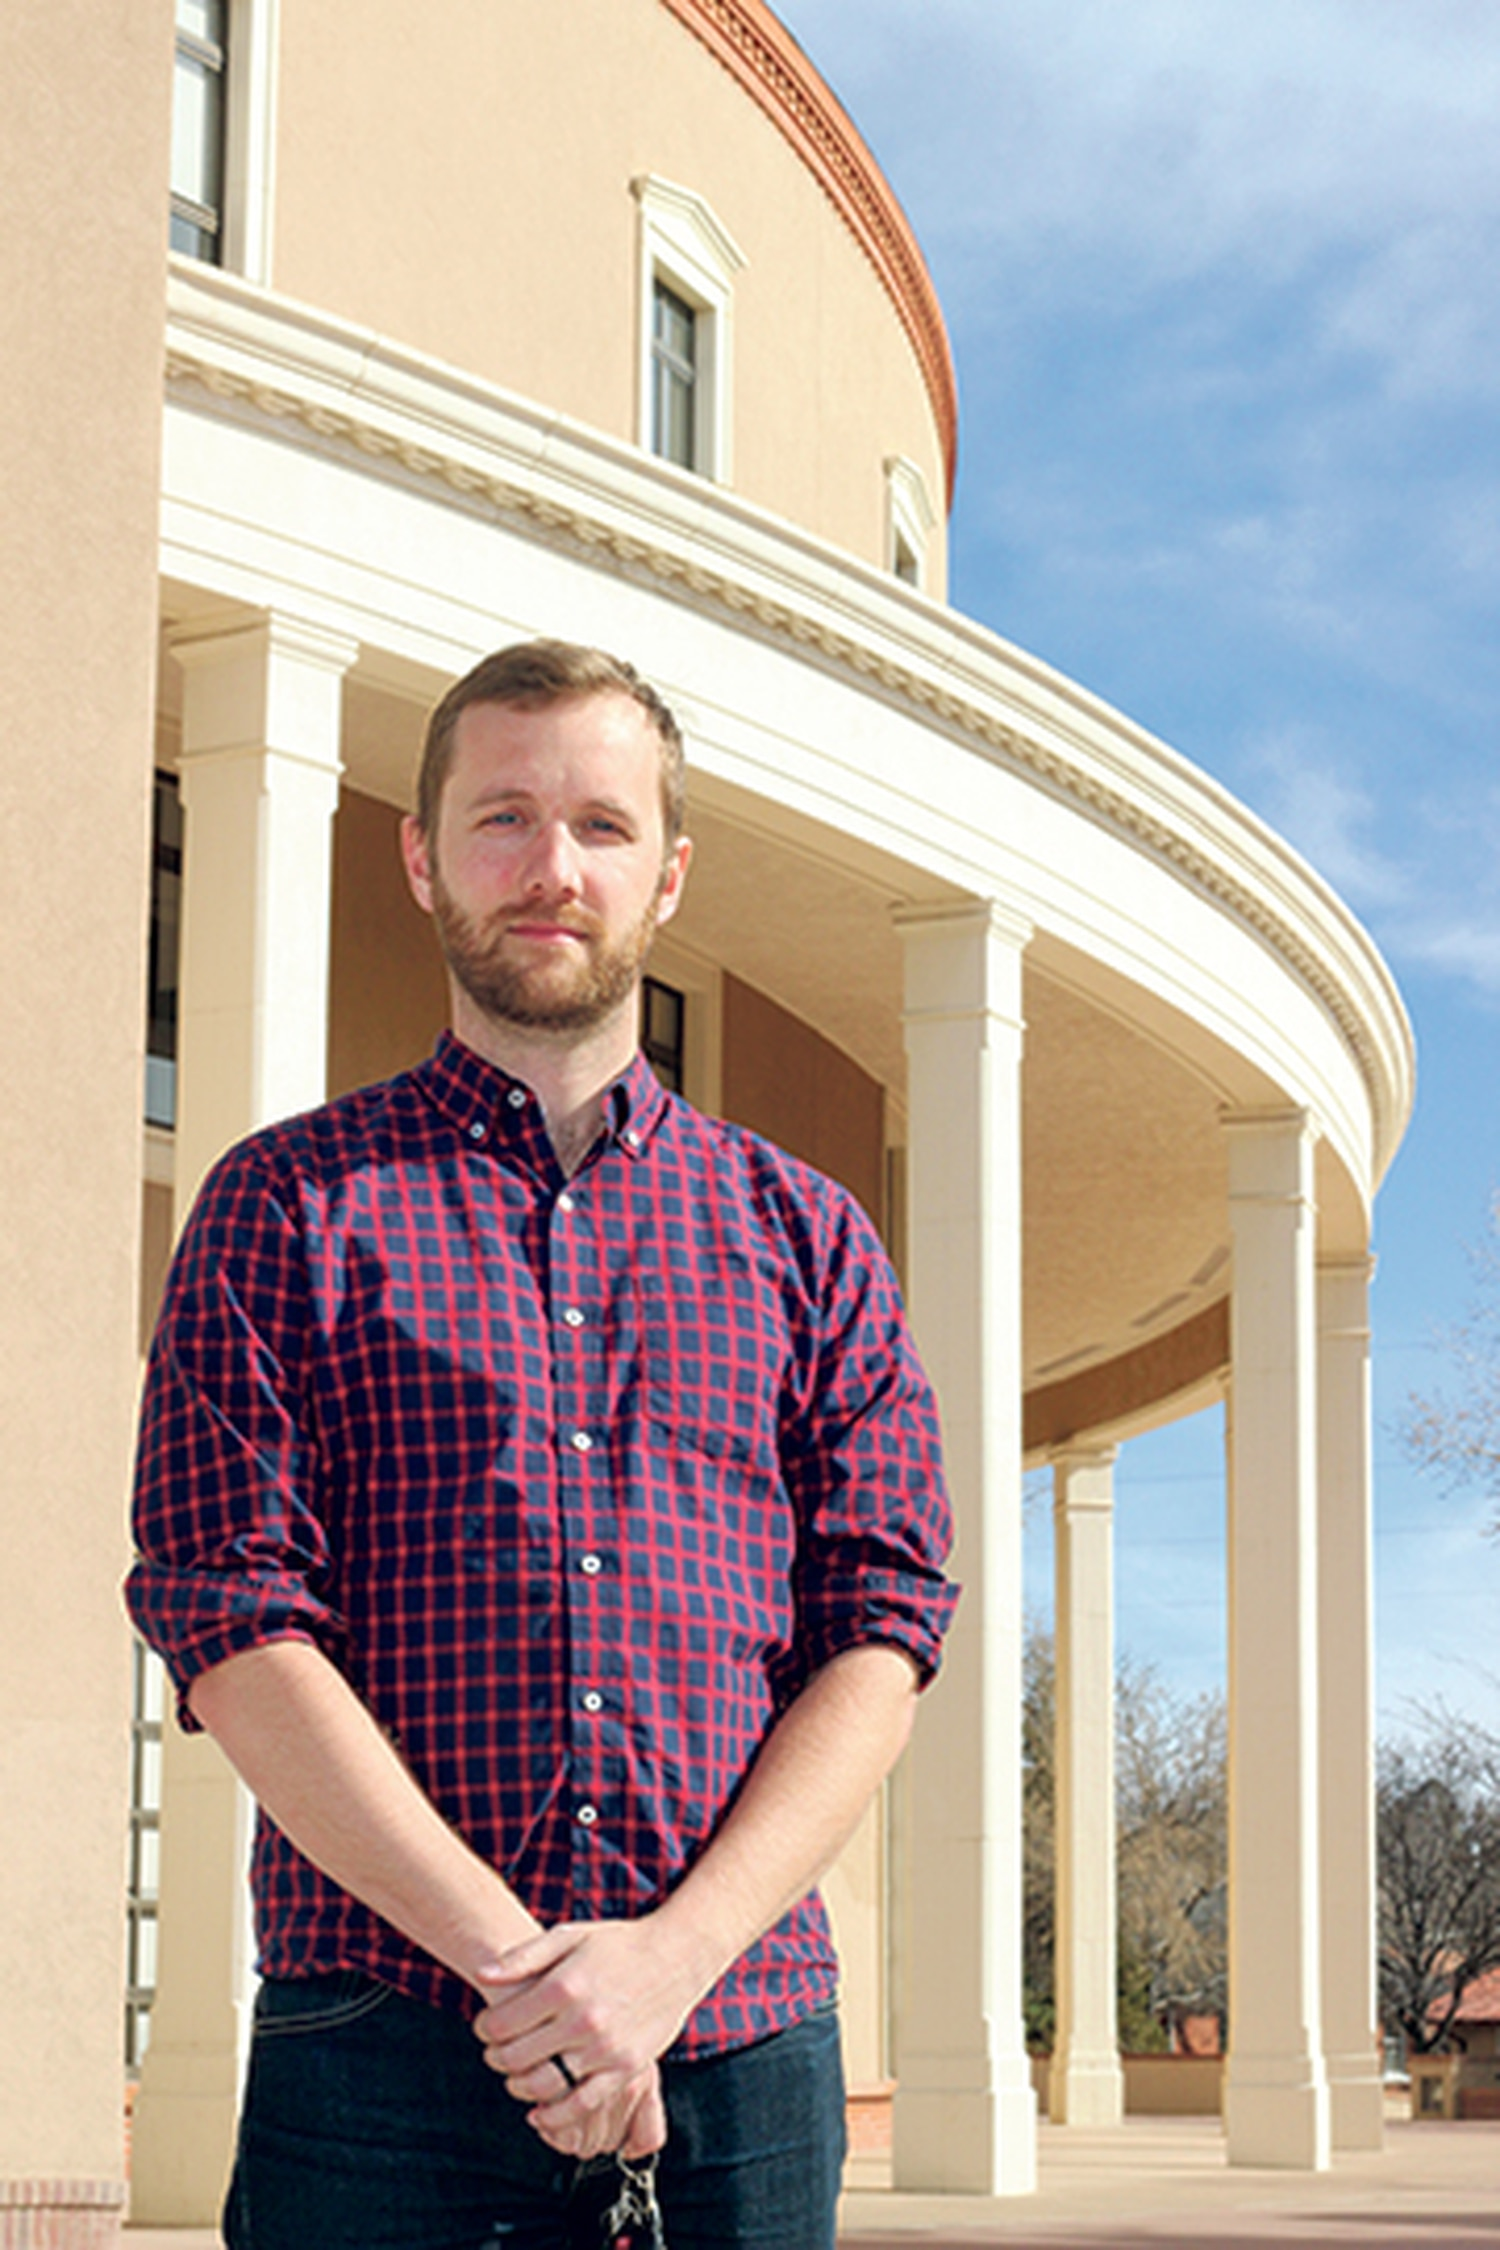 Ben Shelton, political and legislative director for Conservation Voters New Mexico, is among those arguing that New Mexico could and should produce more energy from renewable sources.